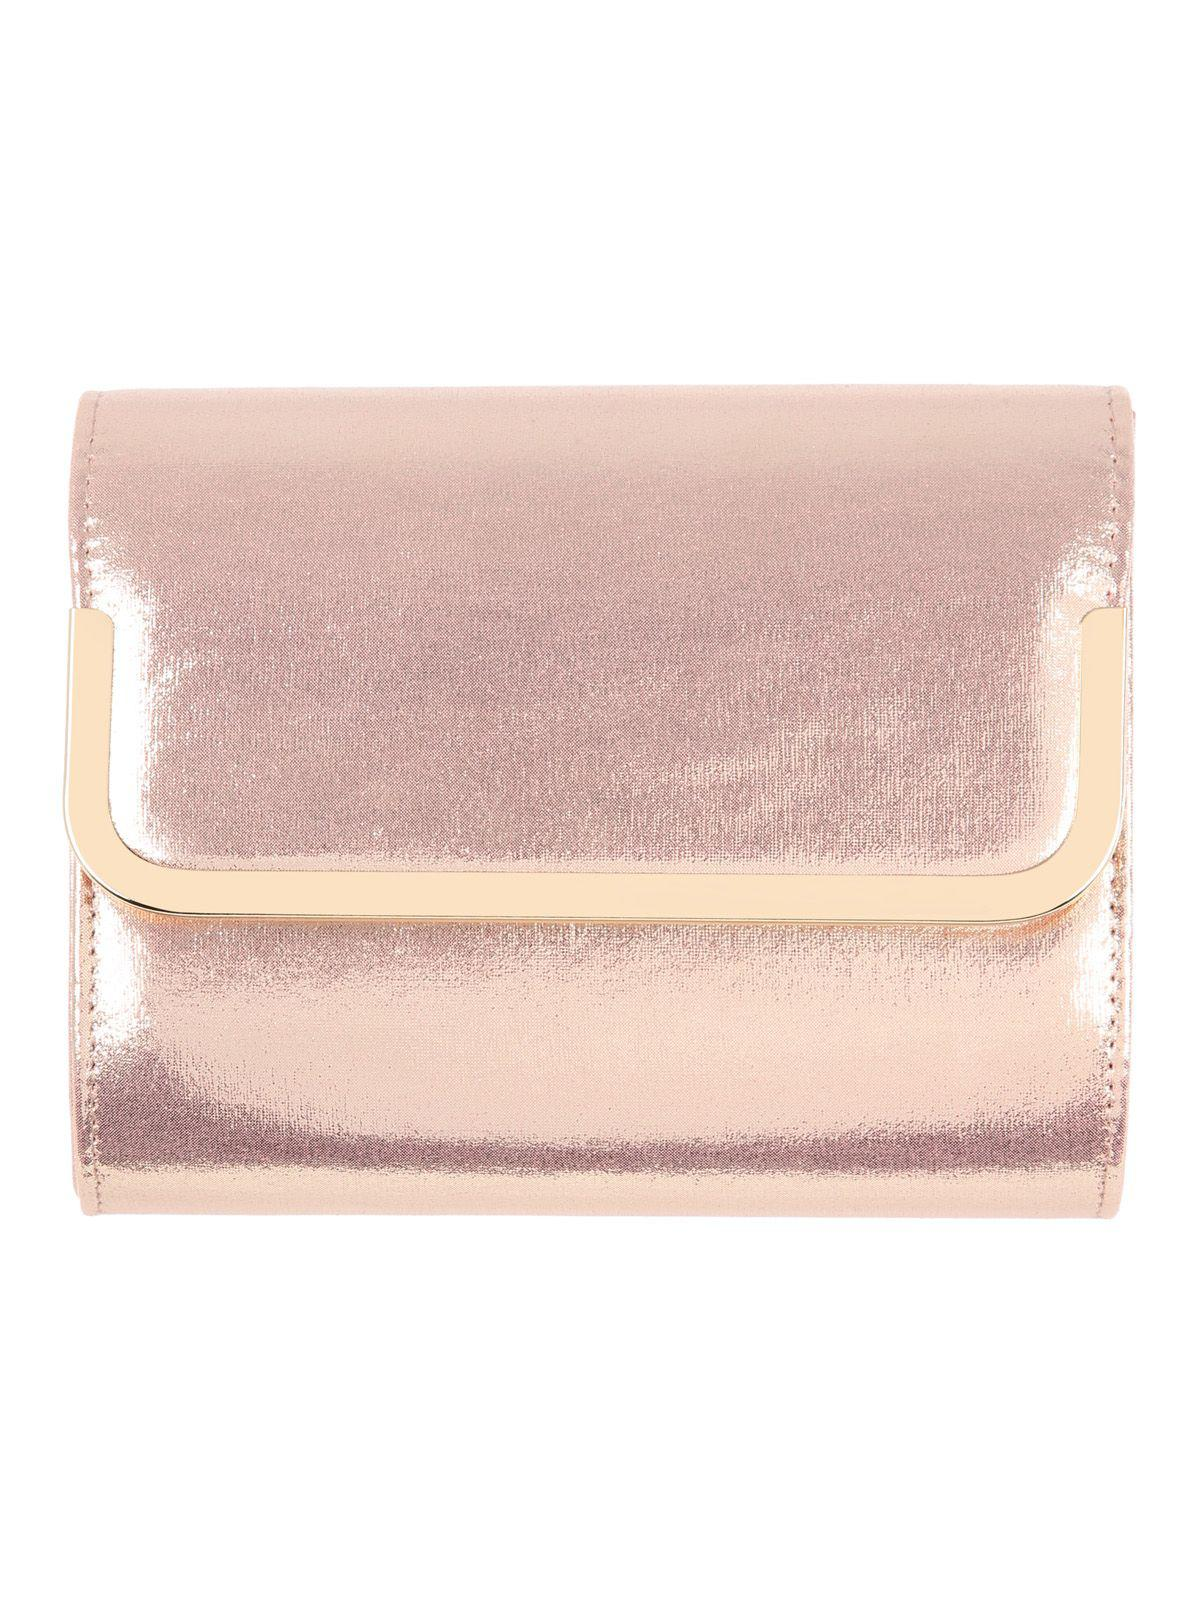 3d9b1a040be Jane Norman Gold Box Clutch Bag in Pink - Lyst